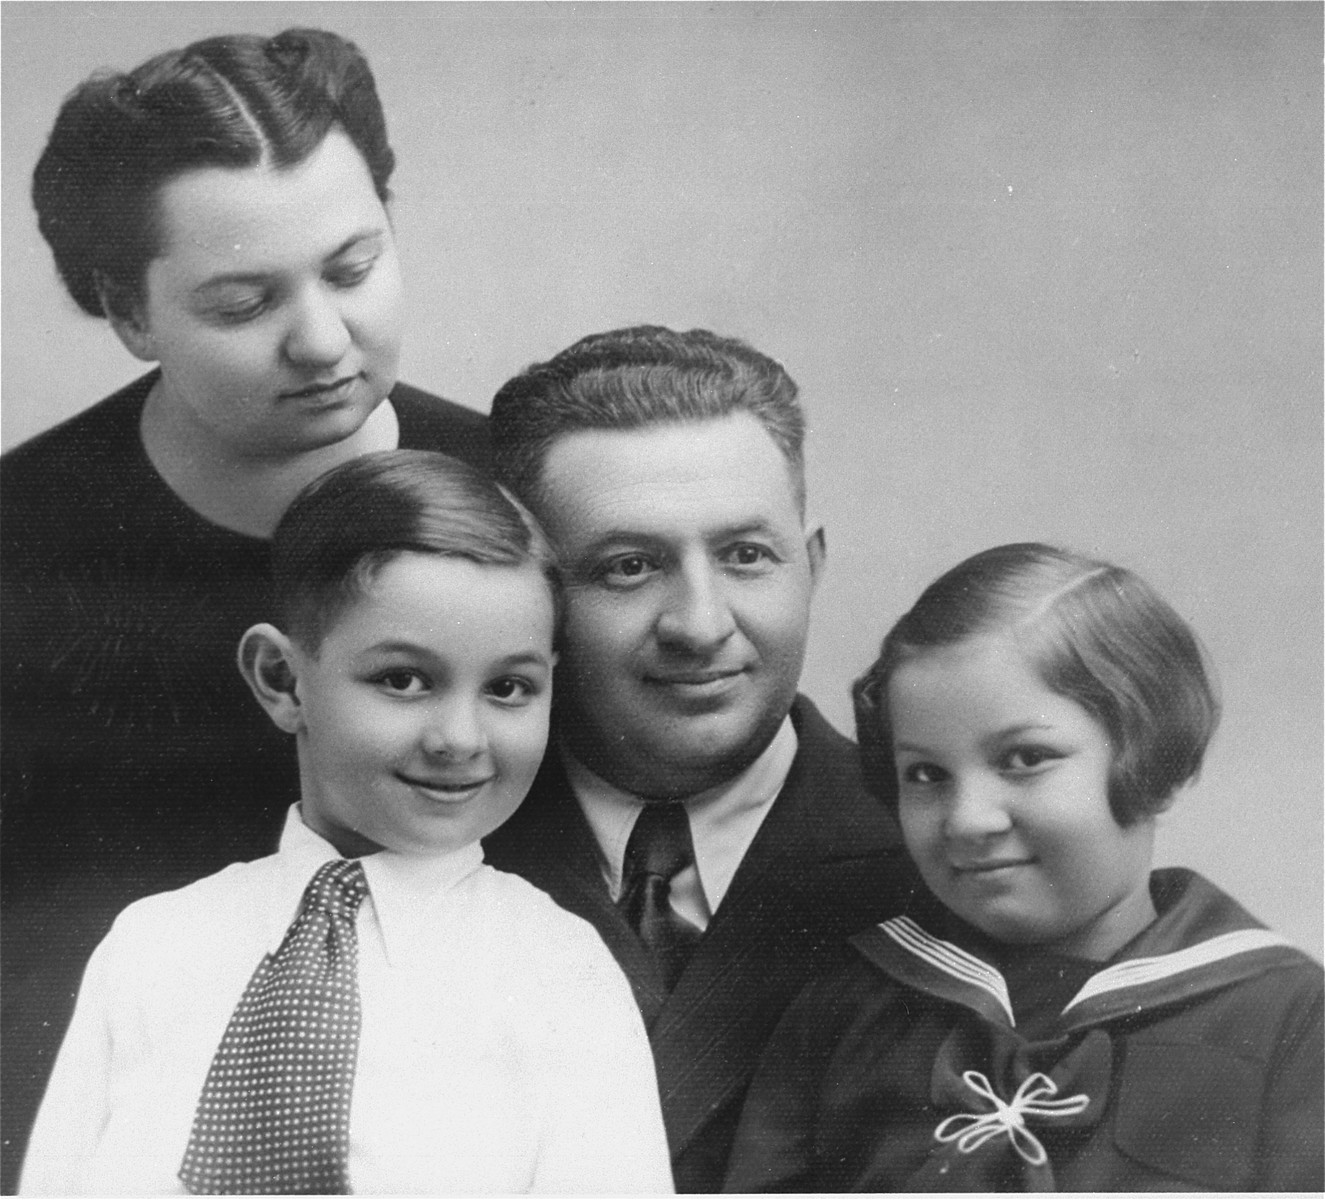 Portrait of the Muller family in Hlohovec, Czechoslovakia just prior to their departure for Canada.  Pictured are Nandor and Magda Muller and their two children, Heinrich and Alice.